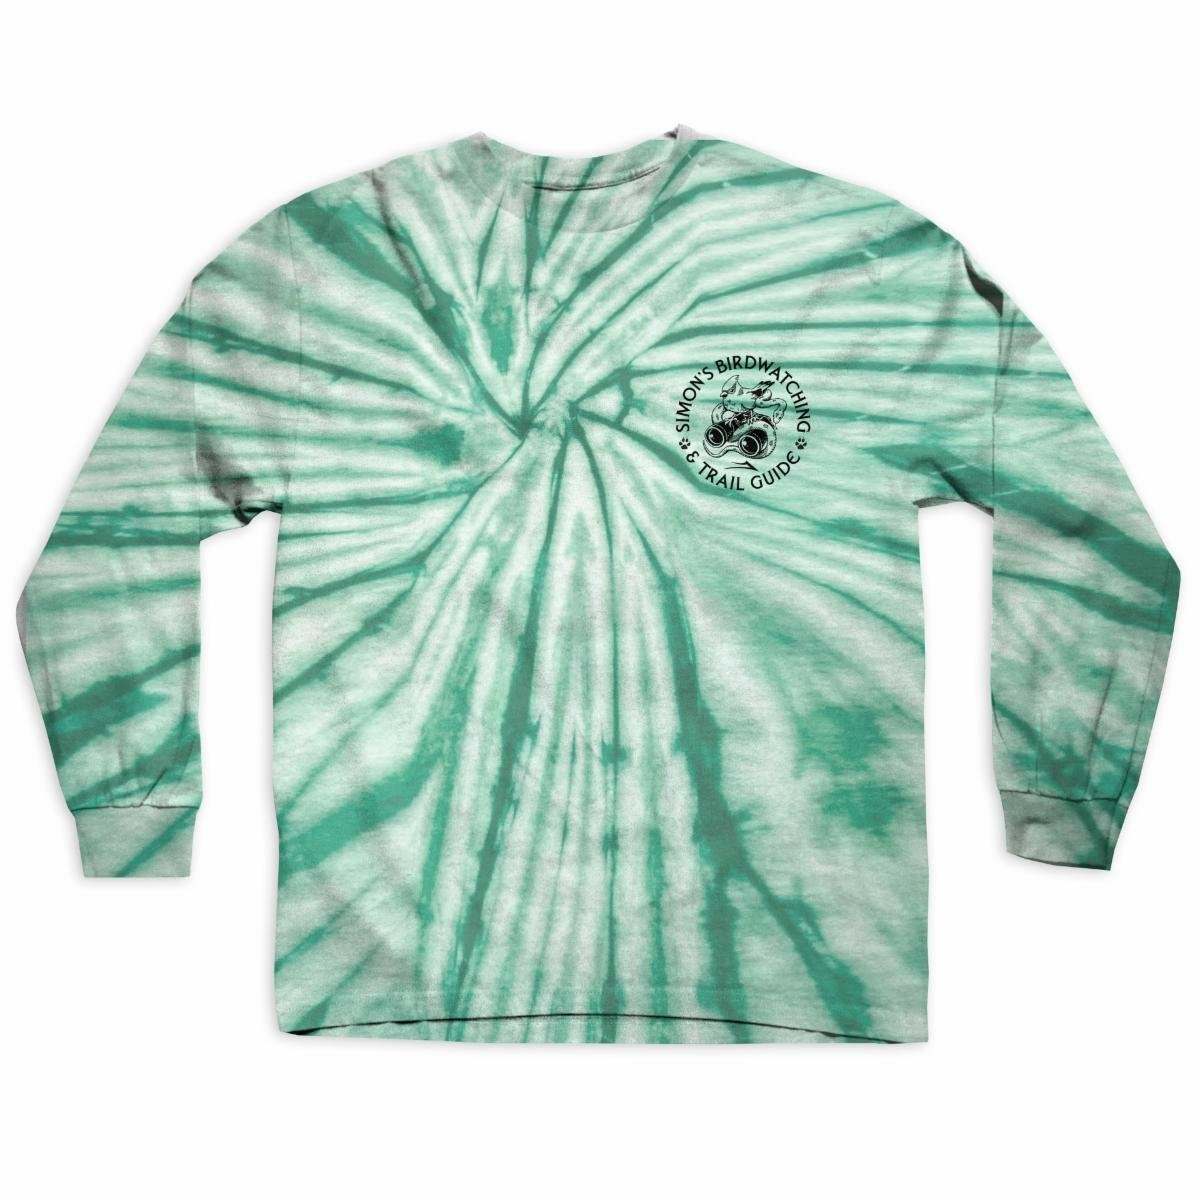 Lakai Simon's Birdwatching l/s t shirt green tie dye